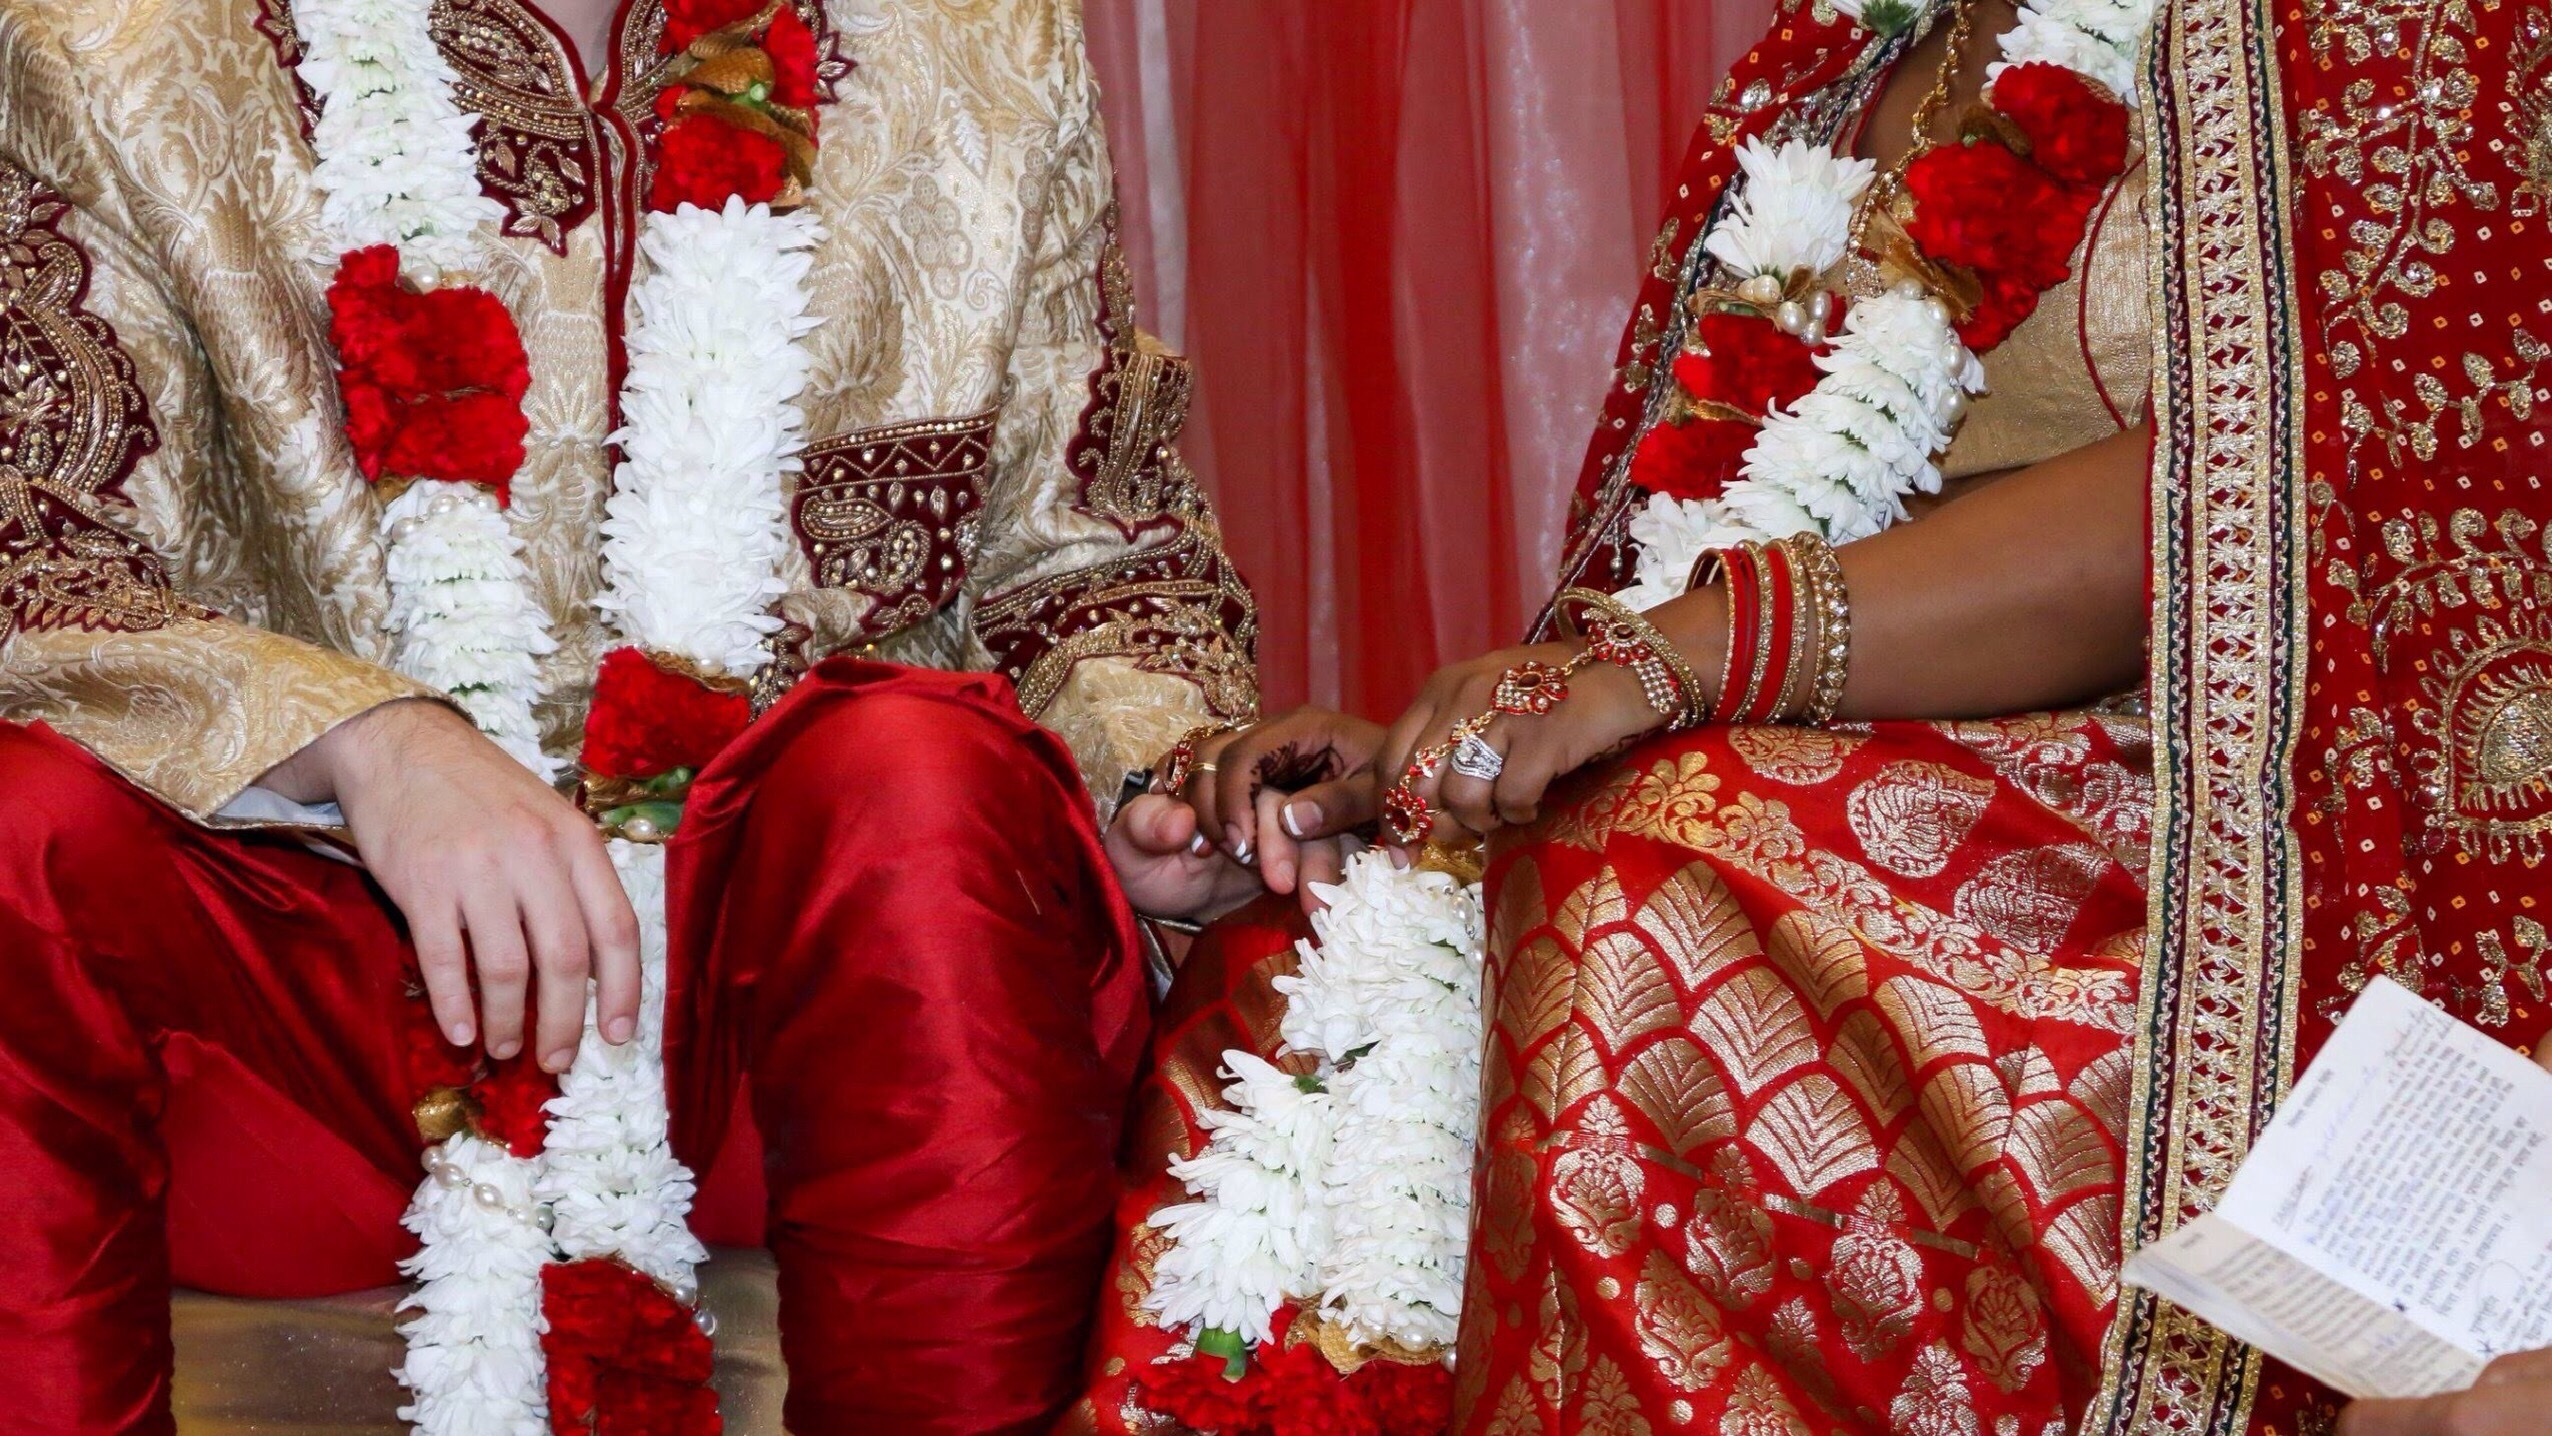 close up photo of a couples hands and legs wearing traditional East Indian wedding attire adorned with flowers, the clothing and flowers are all bright red, white and gold